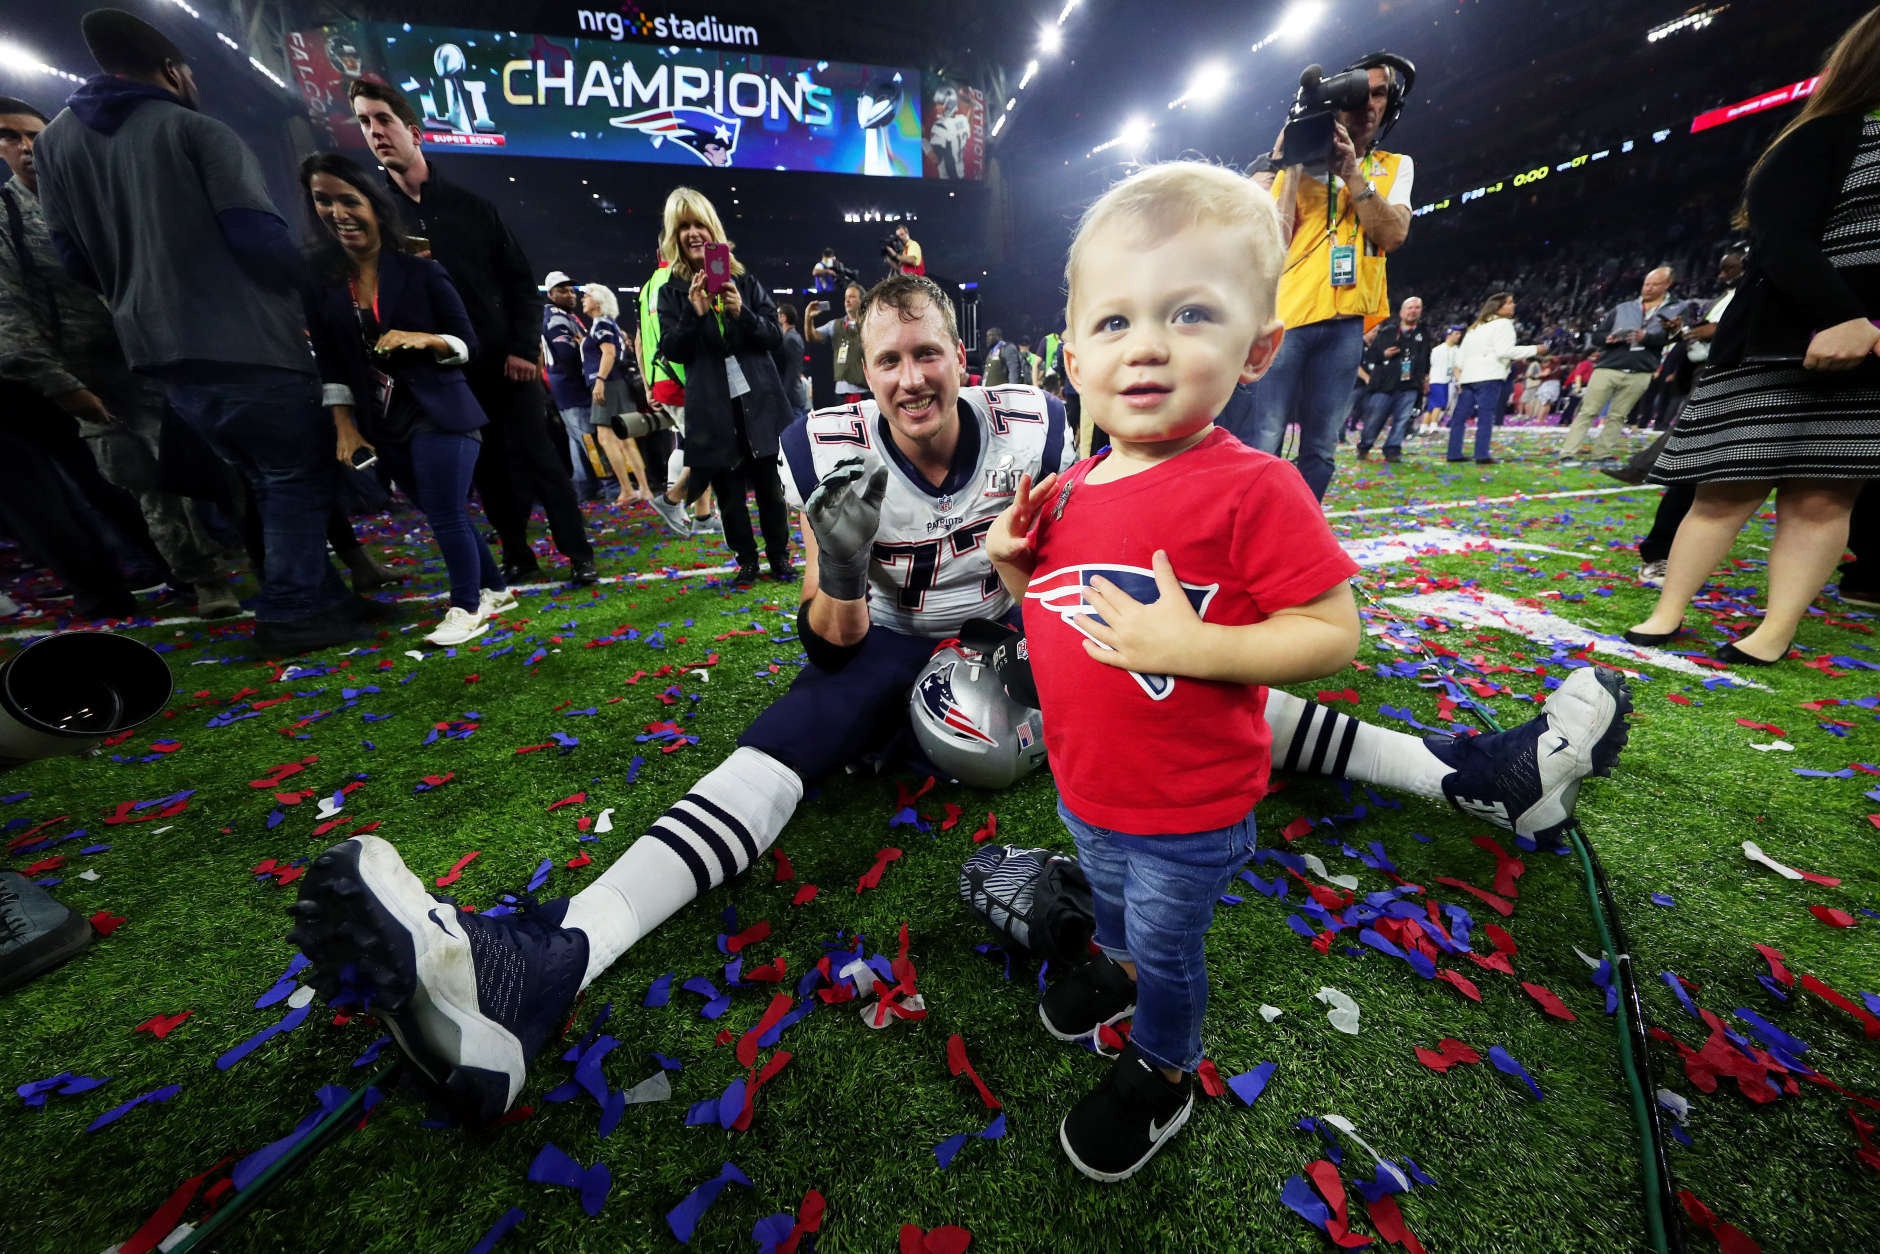 HOUSTON, TX - FEBRUARY 05:  Nate Solder #77 of the New England Patriots celebrates with his son Hudson after defeating the Atlanta Falcons 34-28 in overtime during Super Bowl 51 at NRG Stadium on February 5, 2017 in Houston, Texas.  (Photo by Tom Pennington/Getty Images)